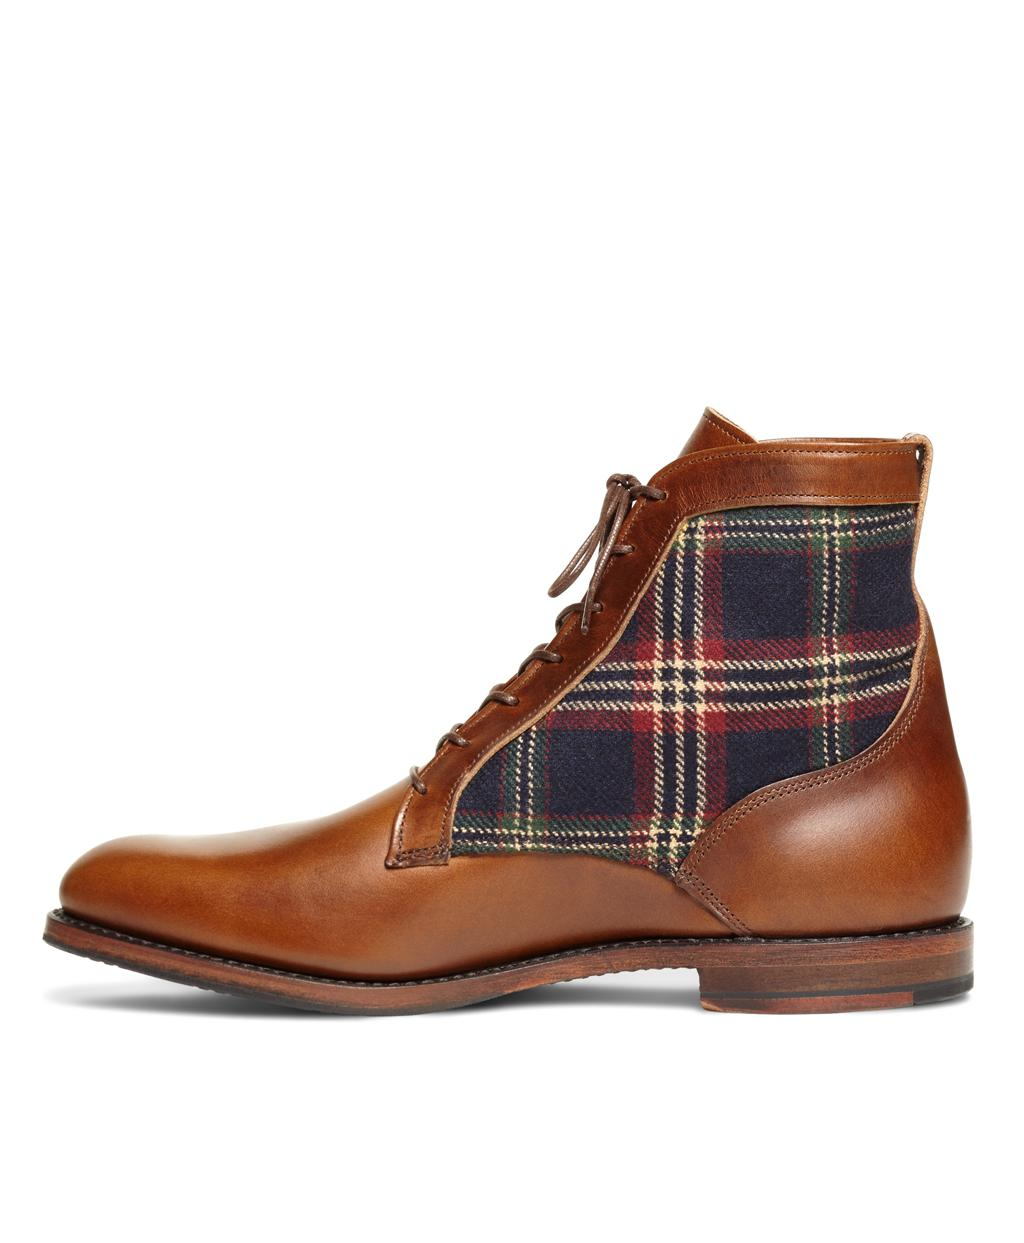 Lyst - Brooks Brothers Leather And Signature Tartan Boots in Brown for Men  - Save 20% 849215468cd